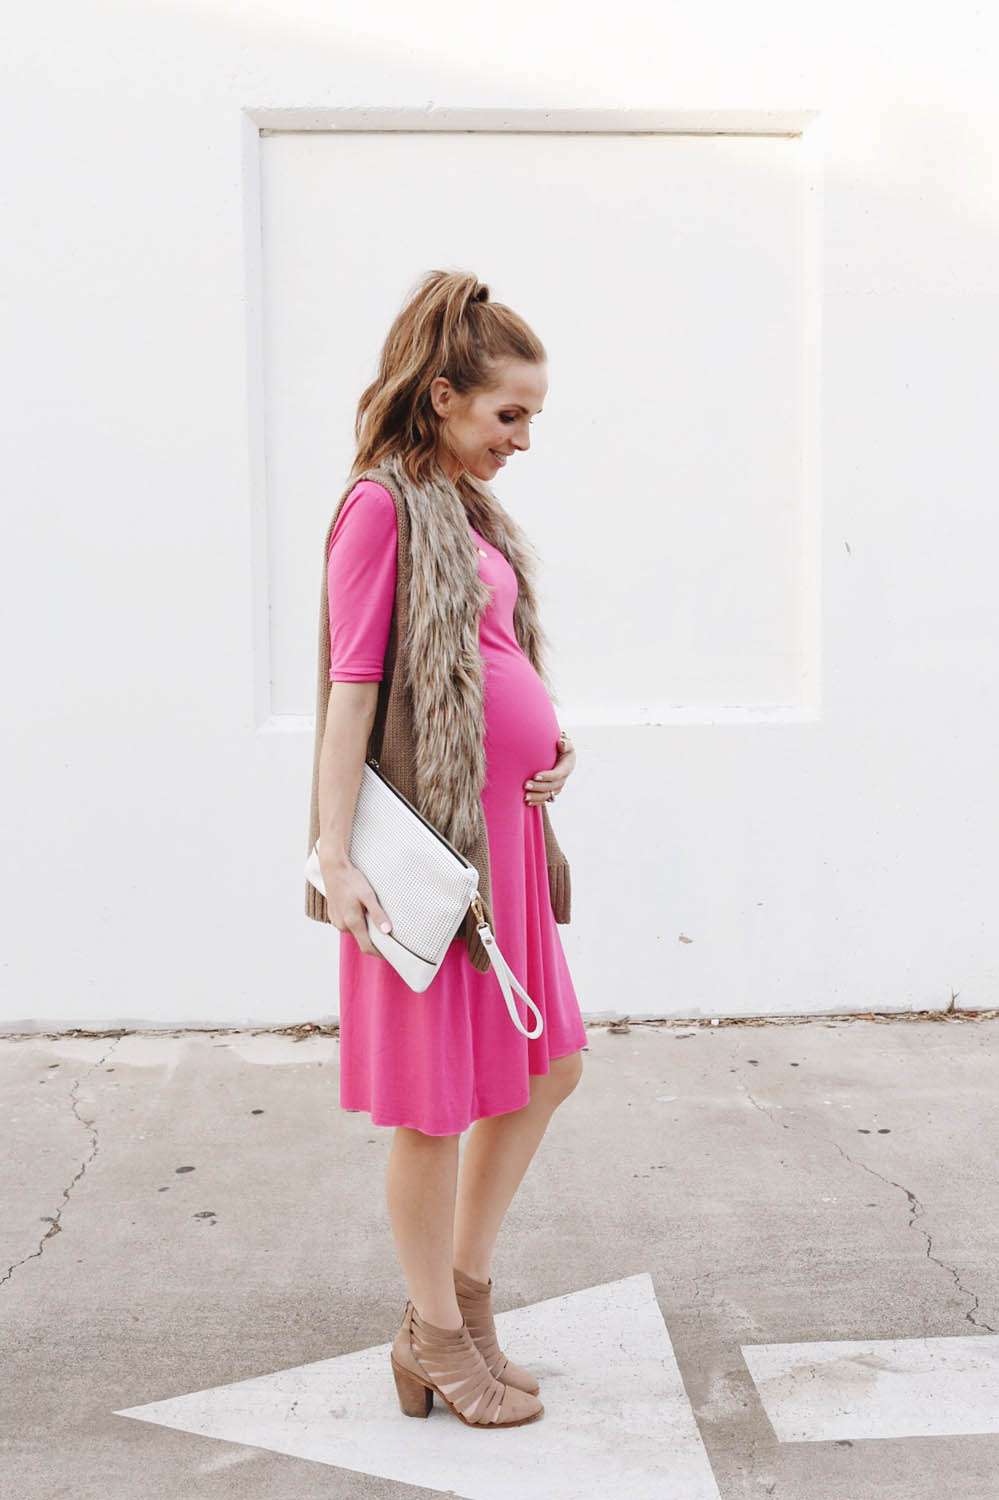 Merrick's Art Pink Swing Dress